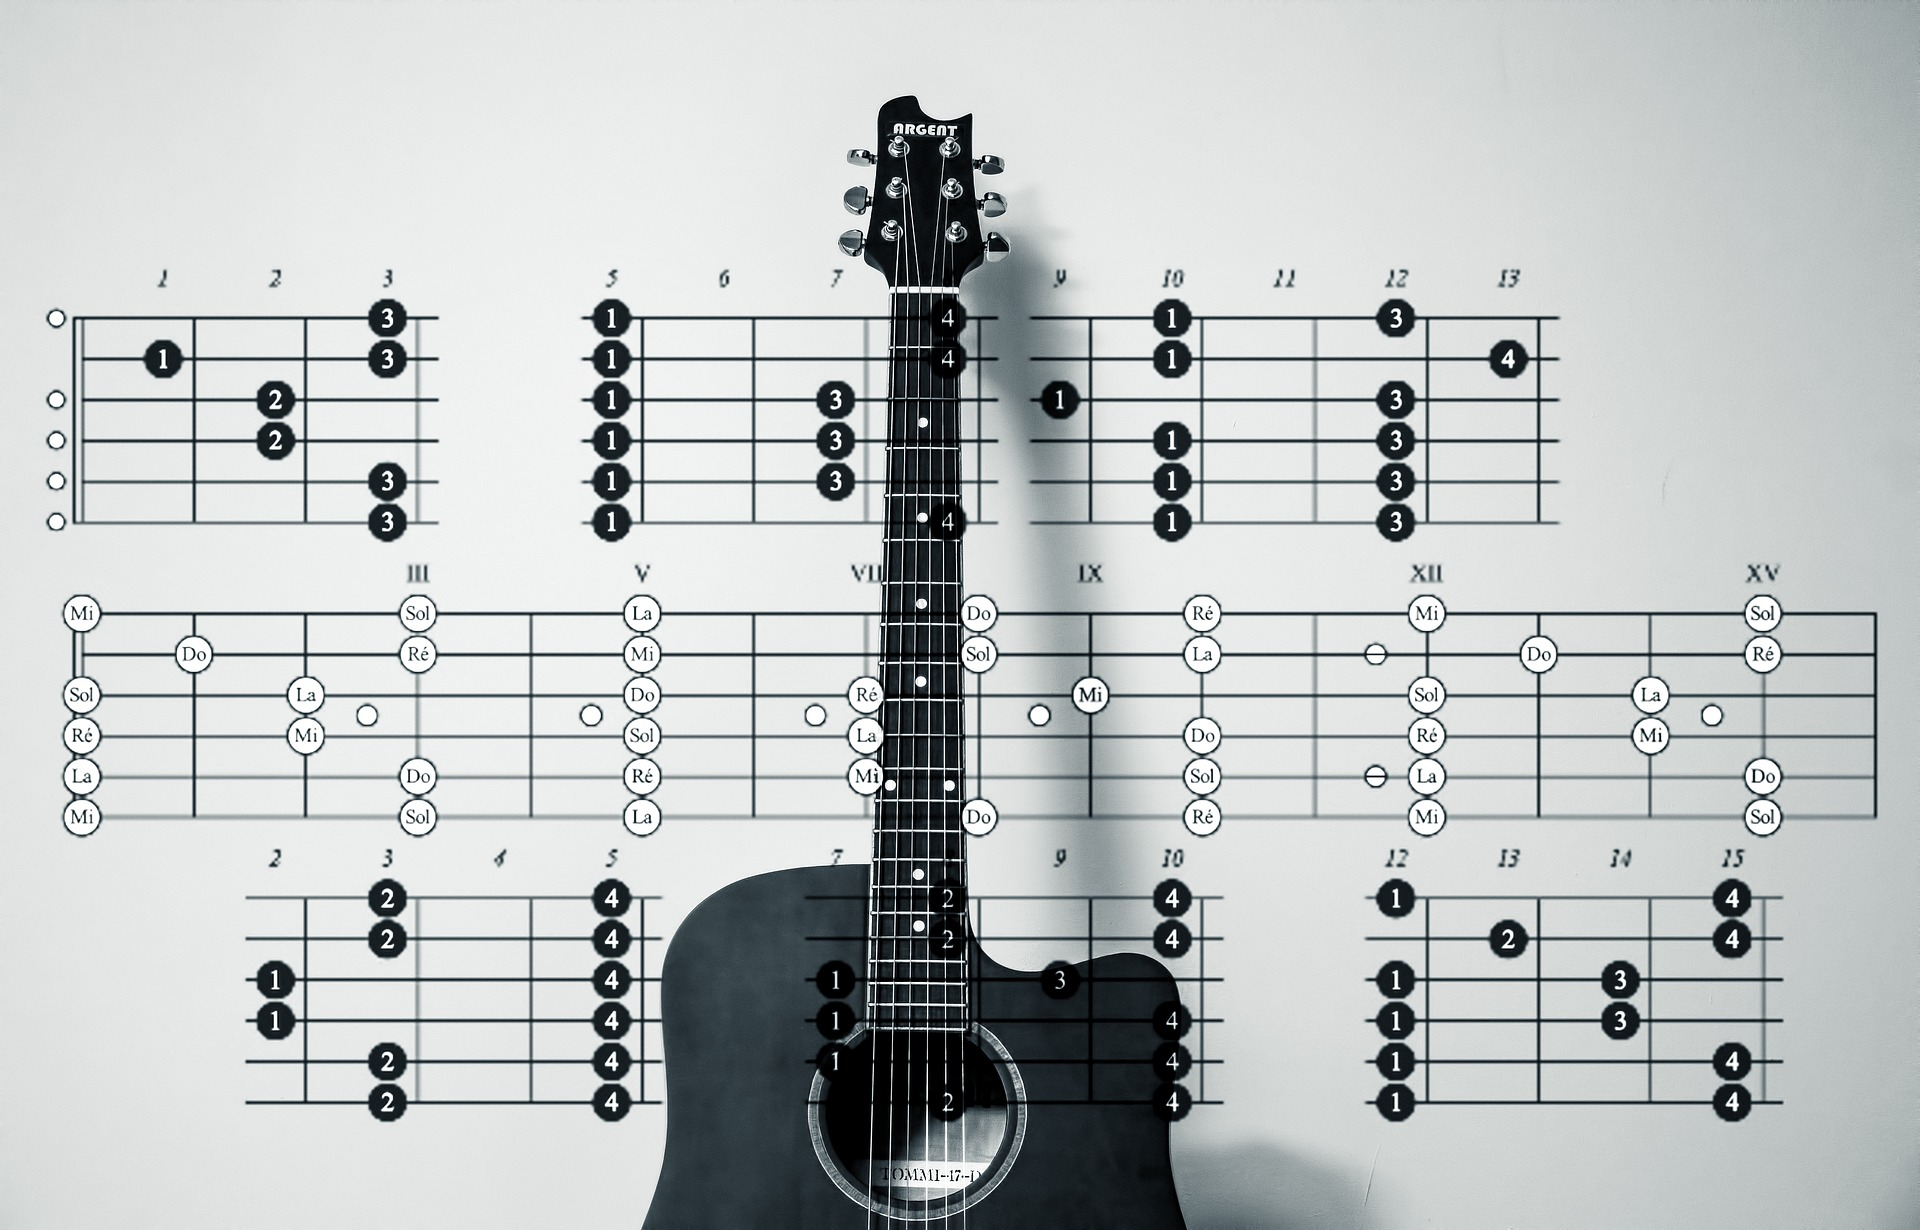 Five Reasons to Enroll in Guitar Lessons vs Teaching Yourself